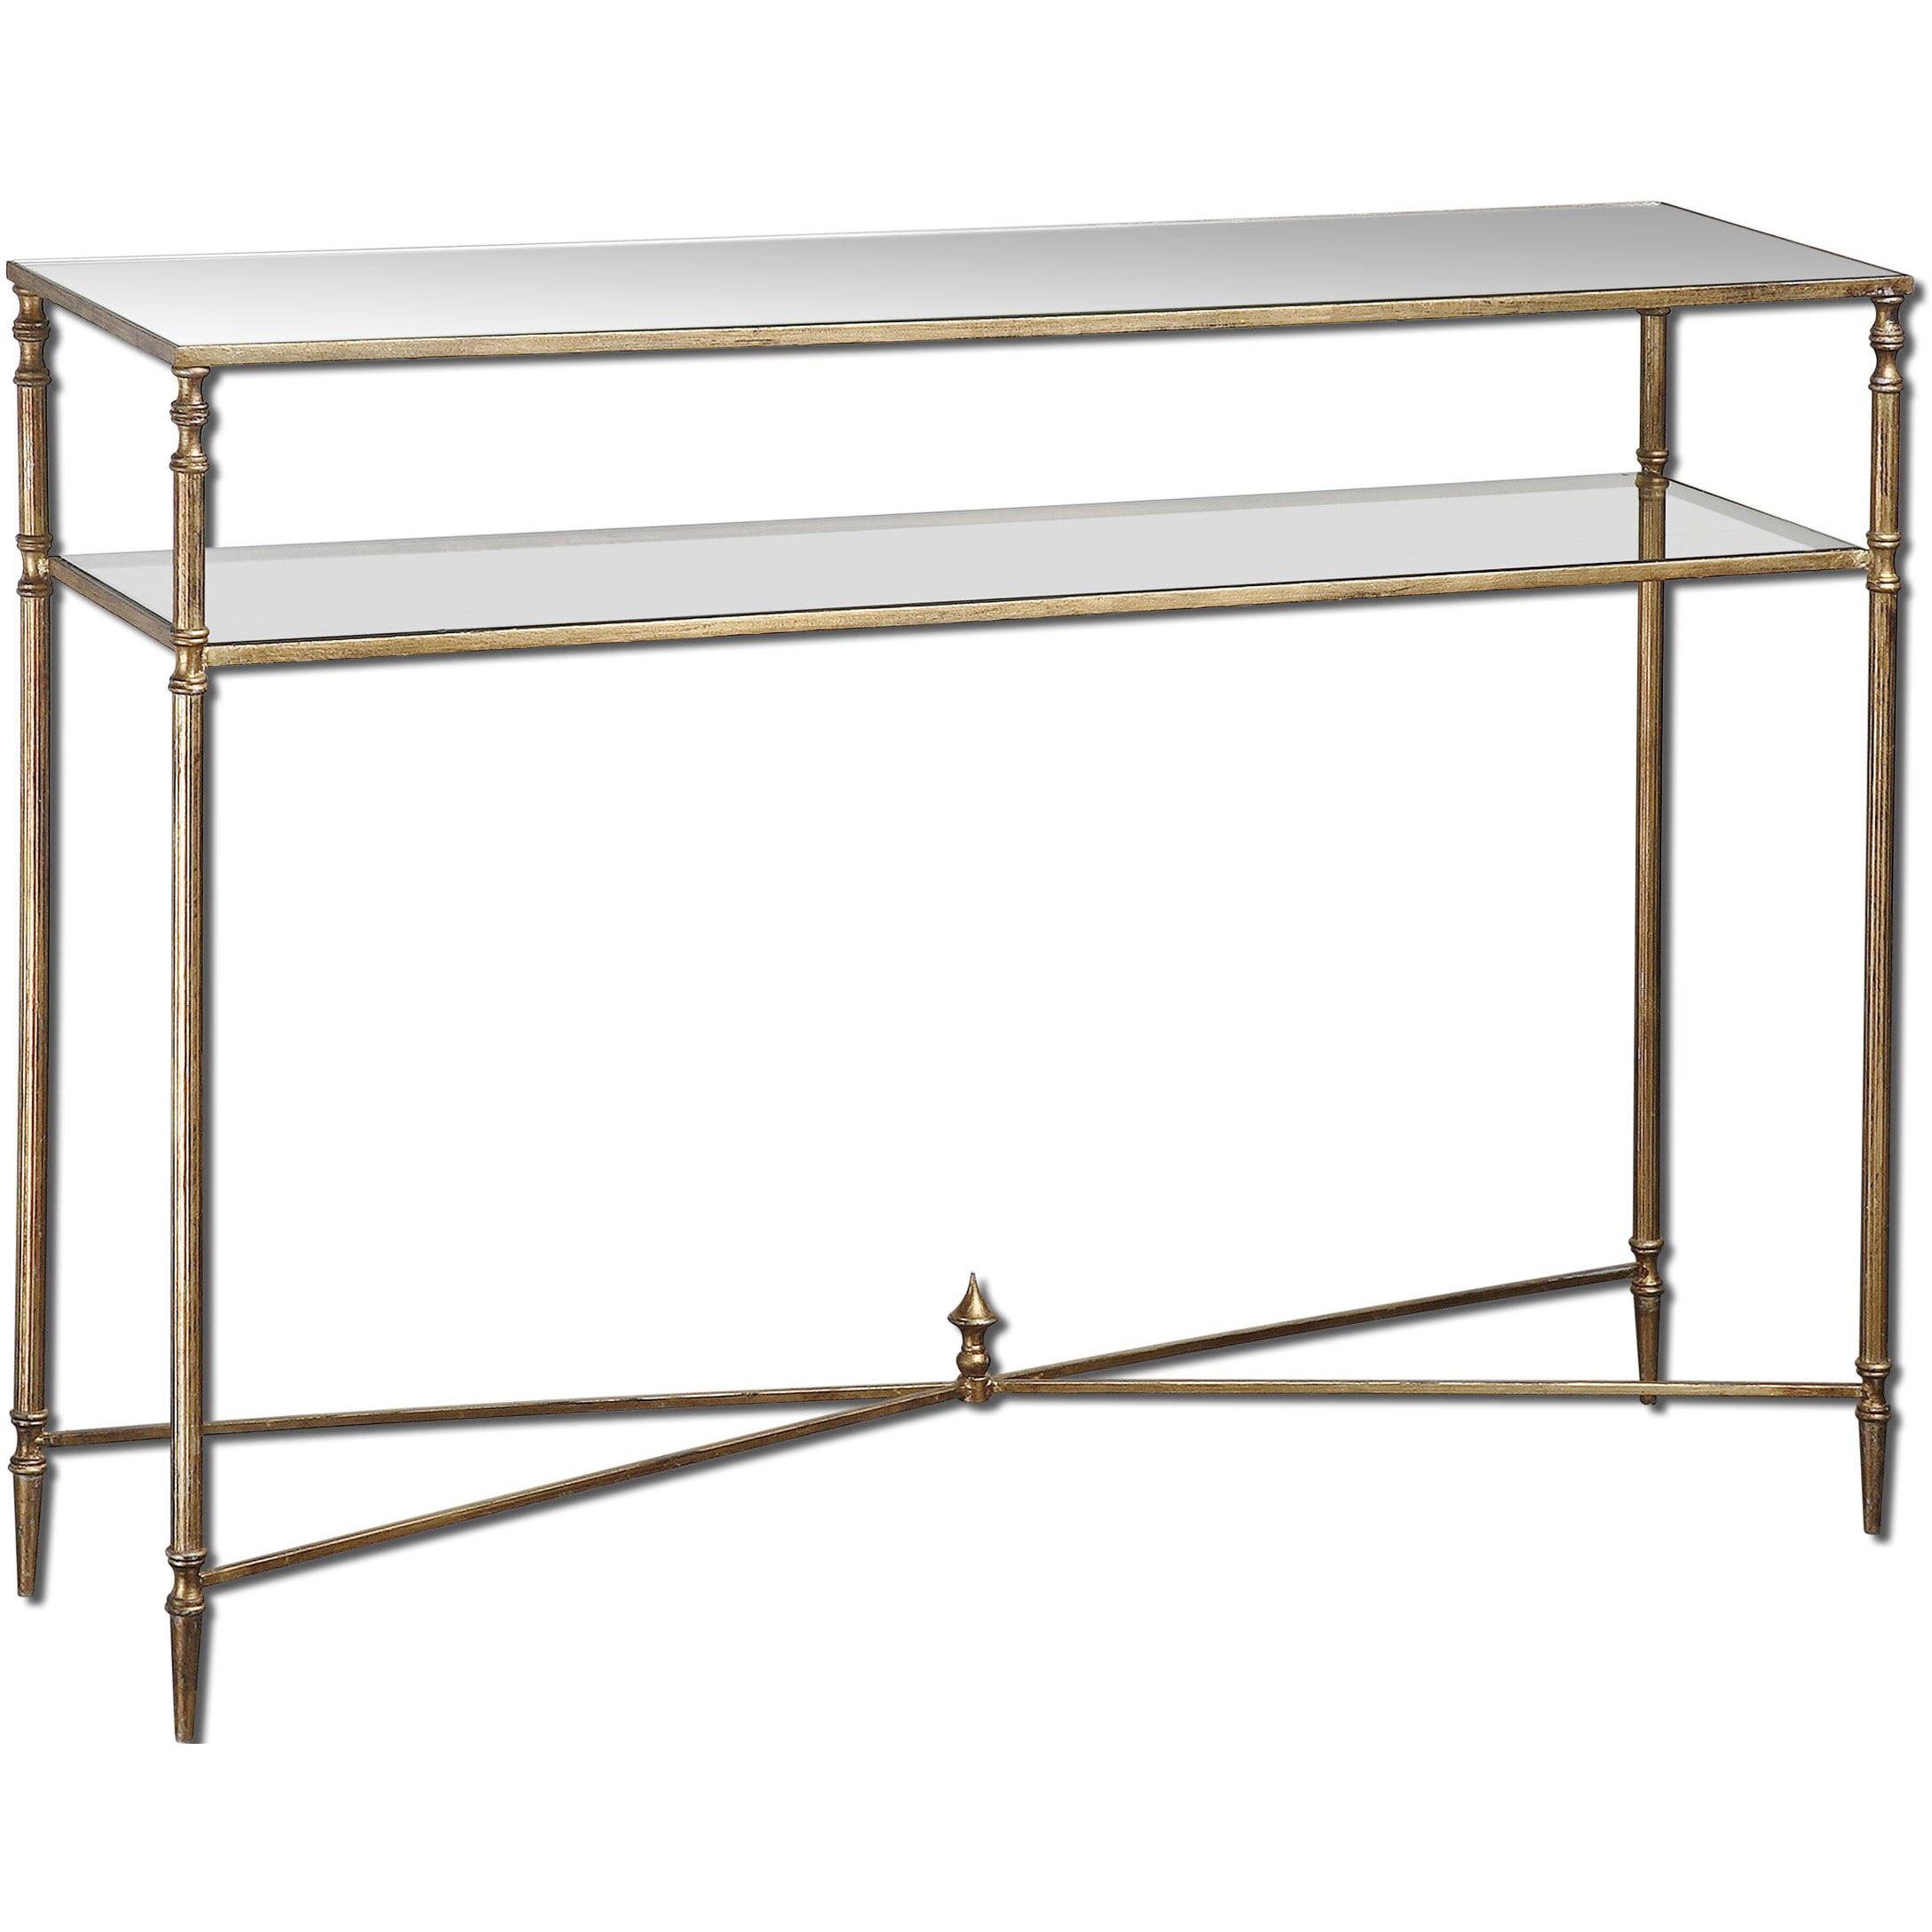 Uttermost Henzler Mirrored Glass Console Table - Free Shipping Today -  Overstock.com - 16902742